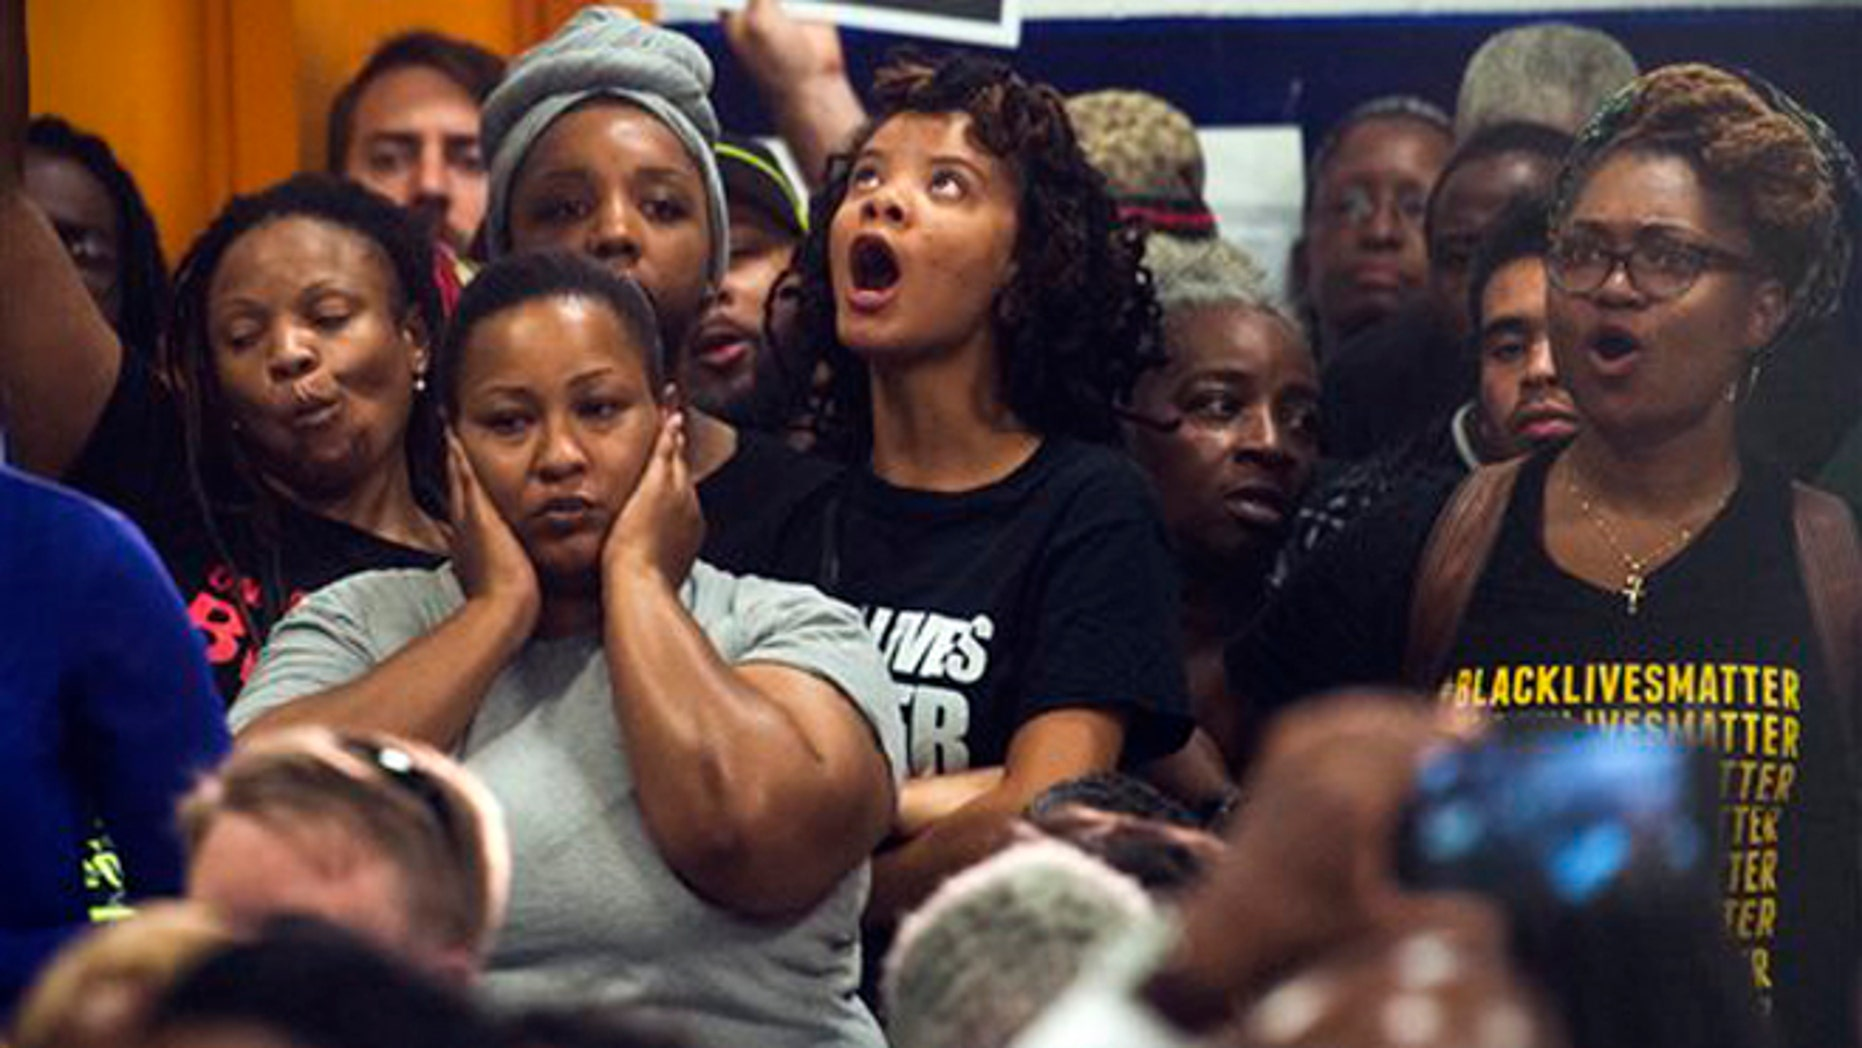 Aug. 27, 2015: People react as Washington D.C. Mayor Muriel Bowser addresses the rise in violent crime in DC during a news conference at the former Malcolm X Elementary School in Congress Heights in Washington, D.C.